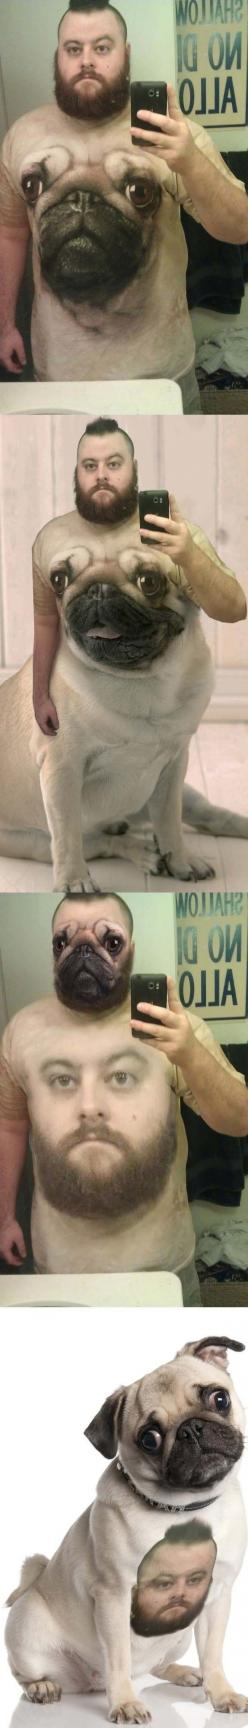 And the Pug Shirt Selfie: | The 32 Absolute Best Selfies Of All Time: Selfie, Giggle, Dogs, Funny Stuff, Humor, Things, Hilarious